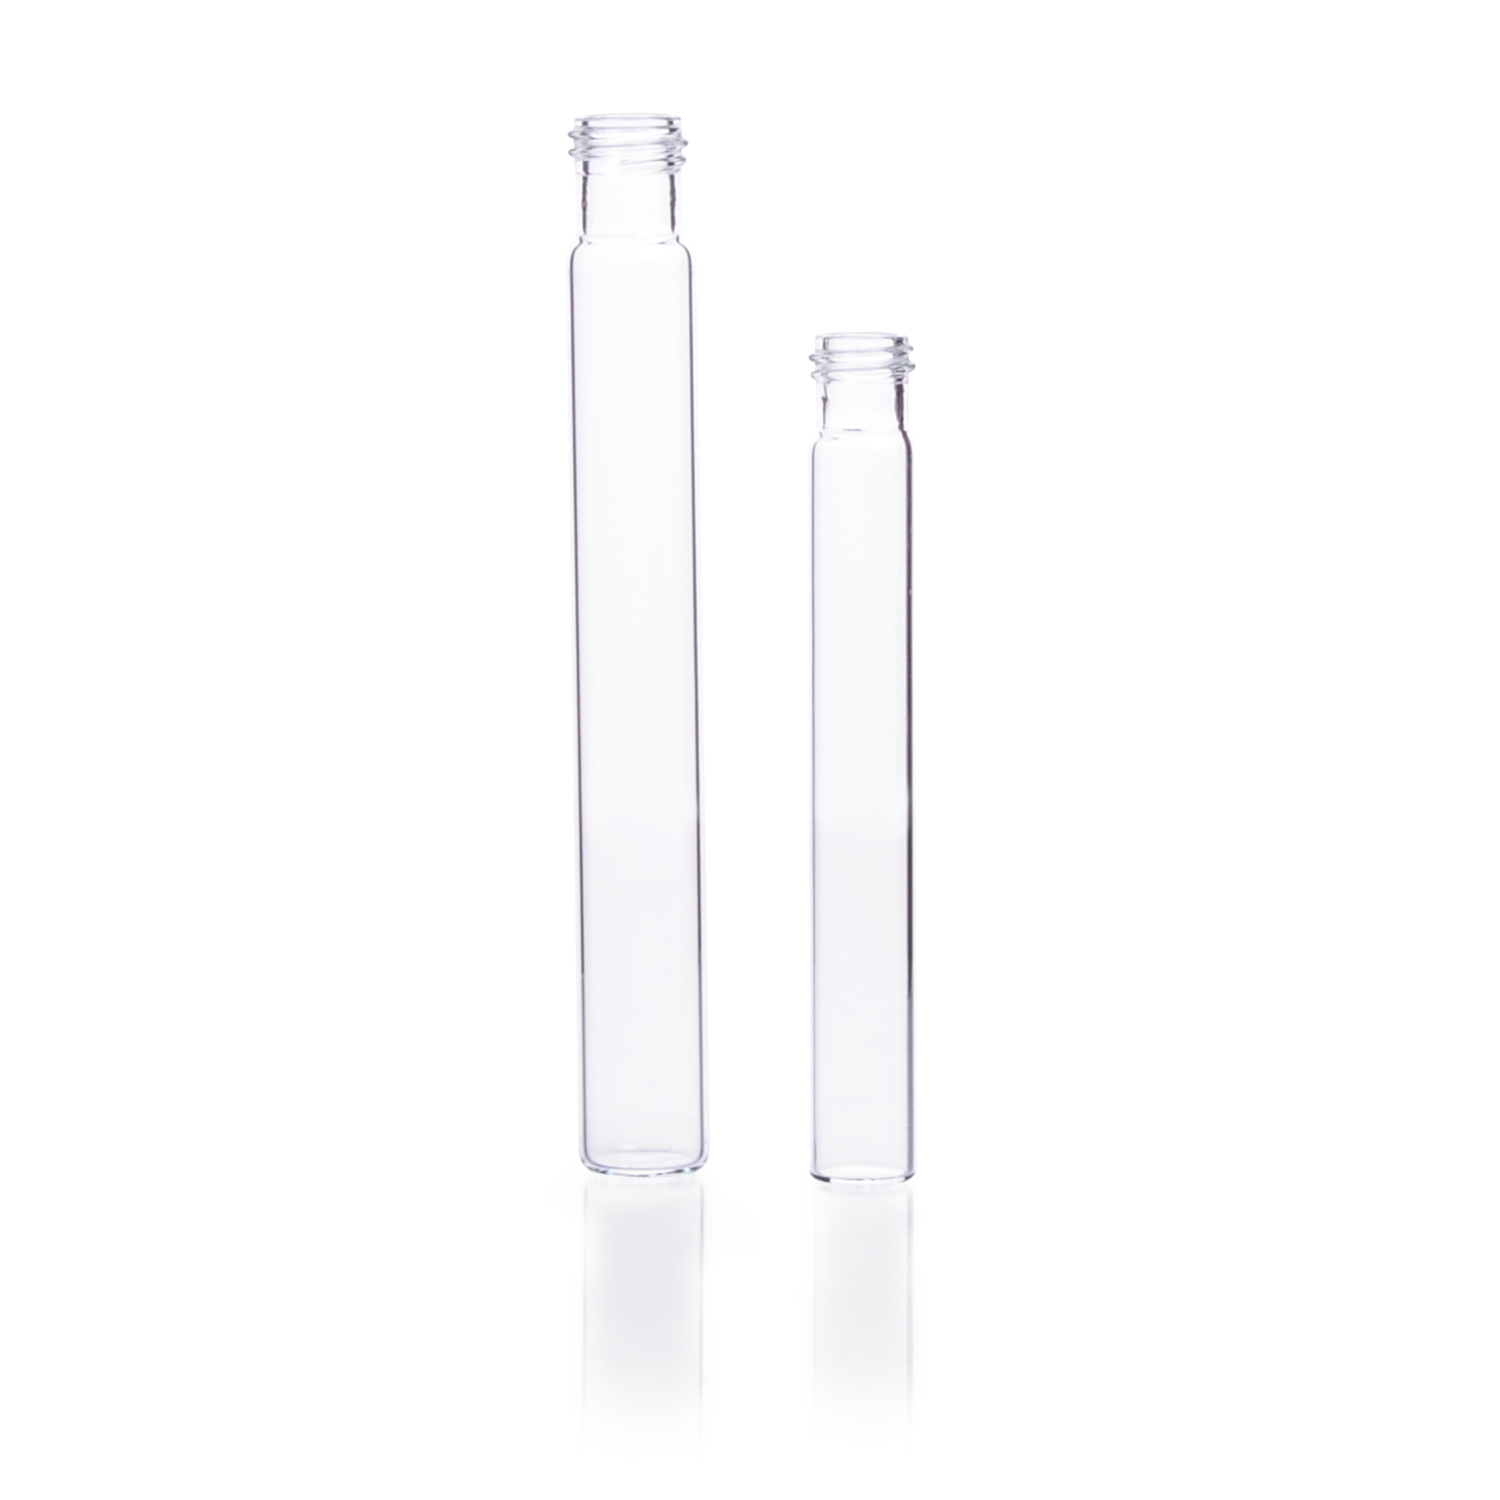 KIMBLE® Flat Bottom Disposable Screw Thread Culture Tube, 18-415, Case of 500, 20 x 113 mm